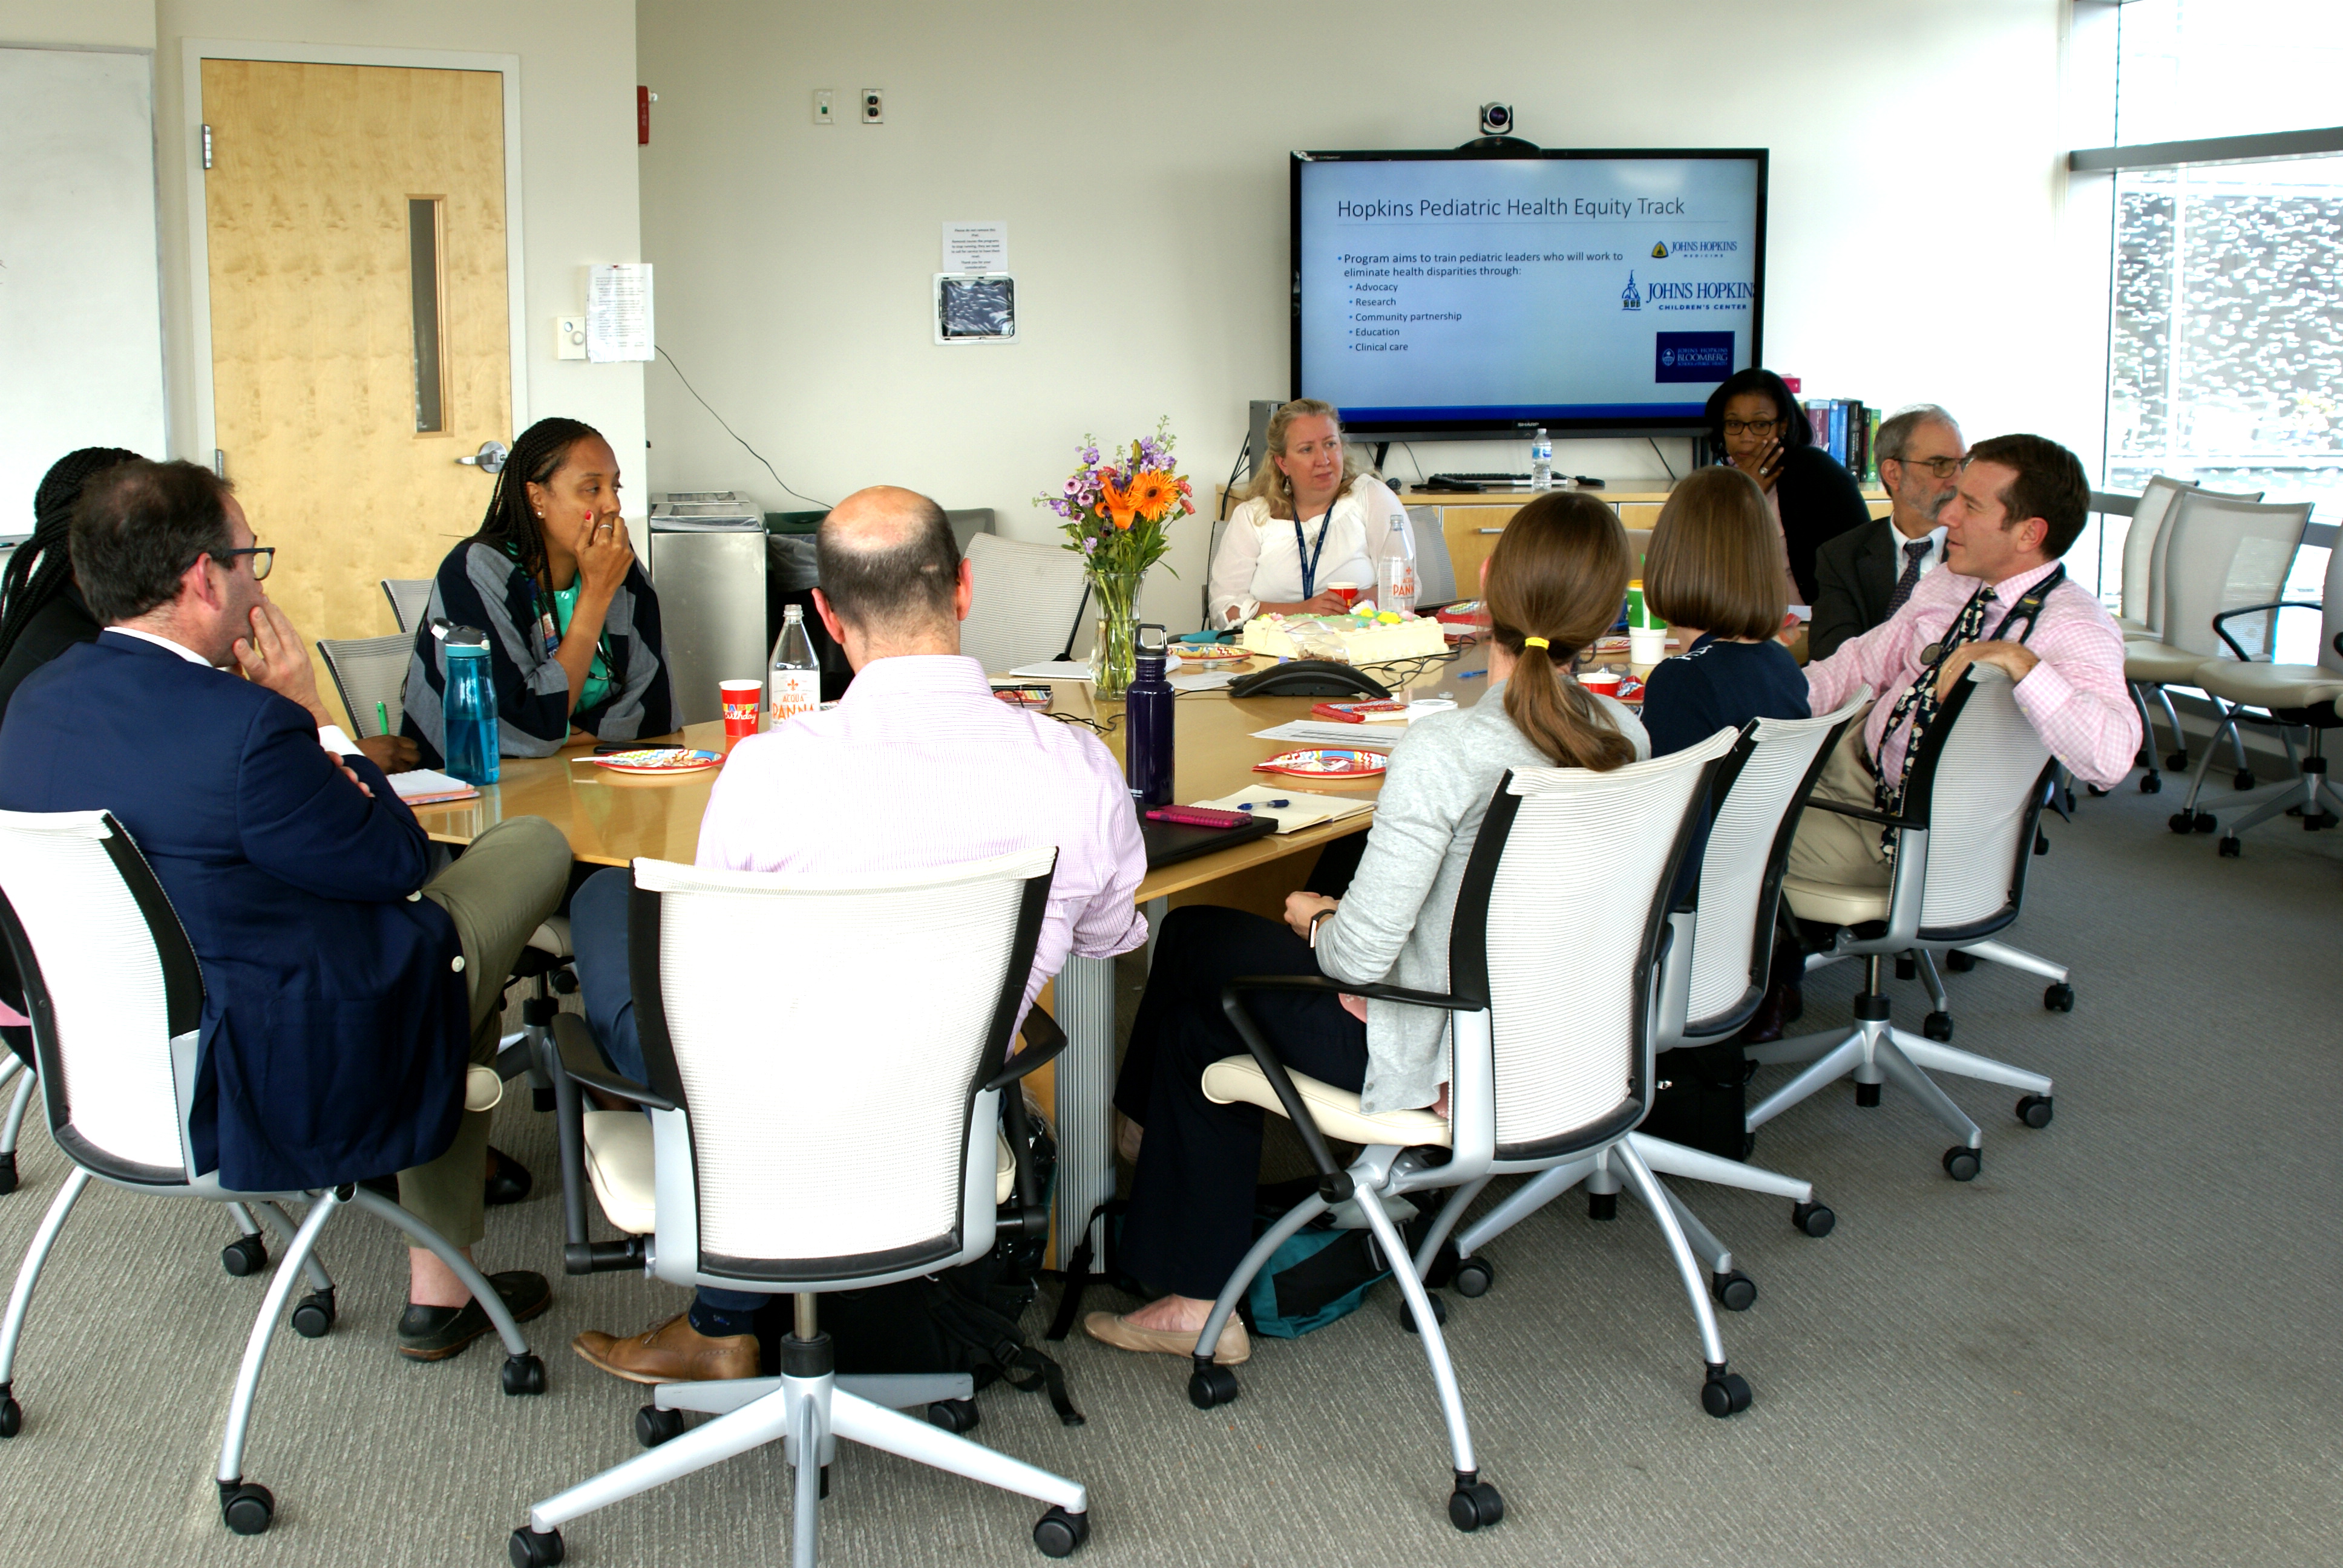 a group of pediatric professionals sitting in on a conference